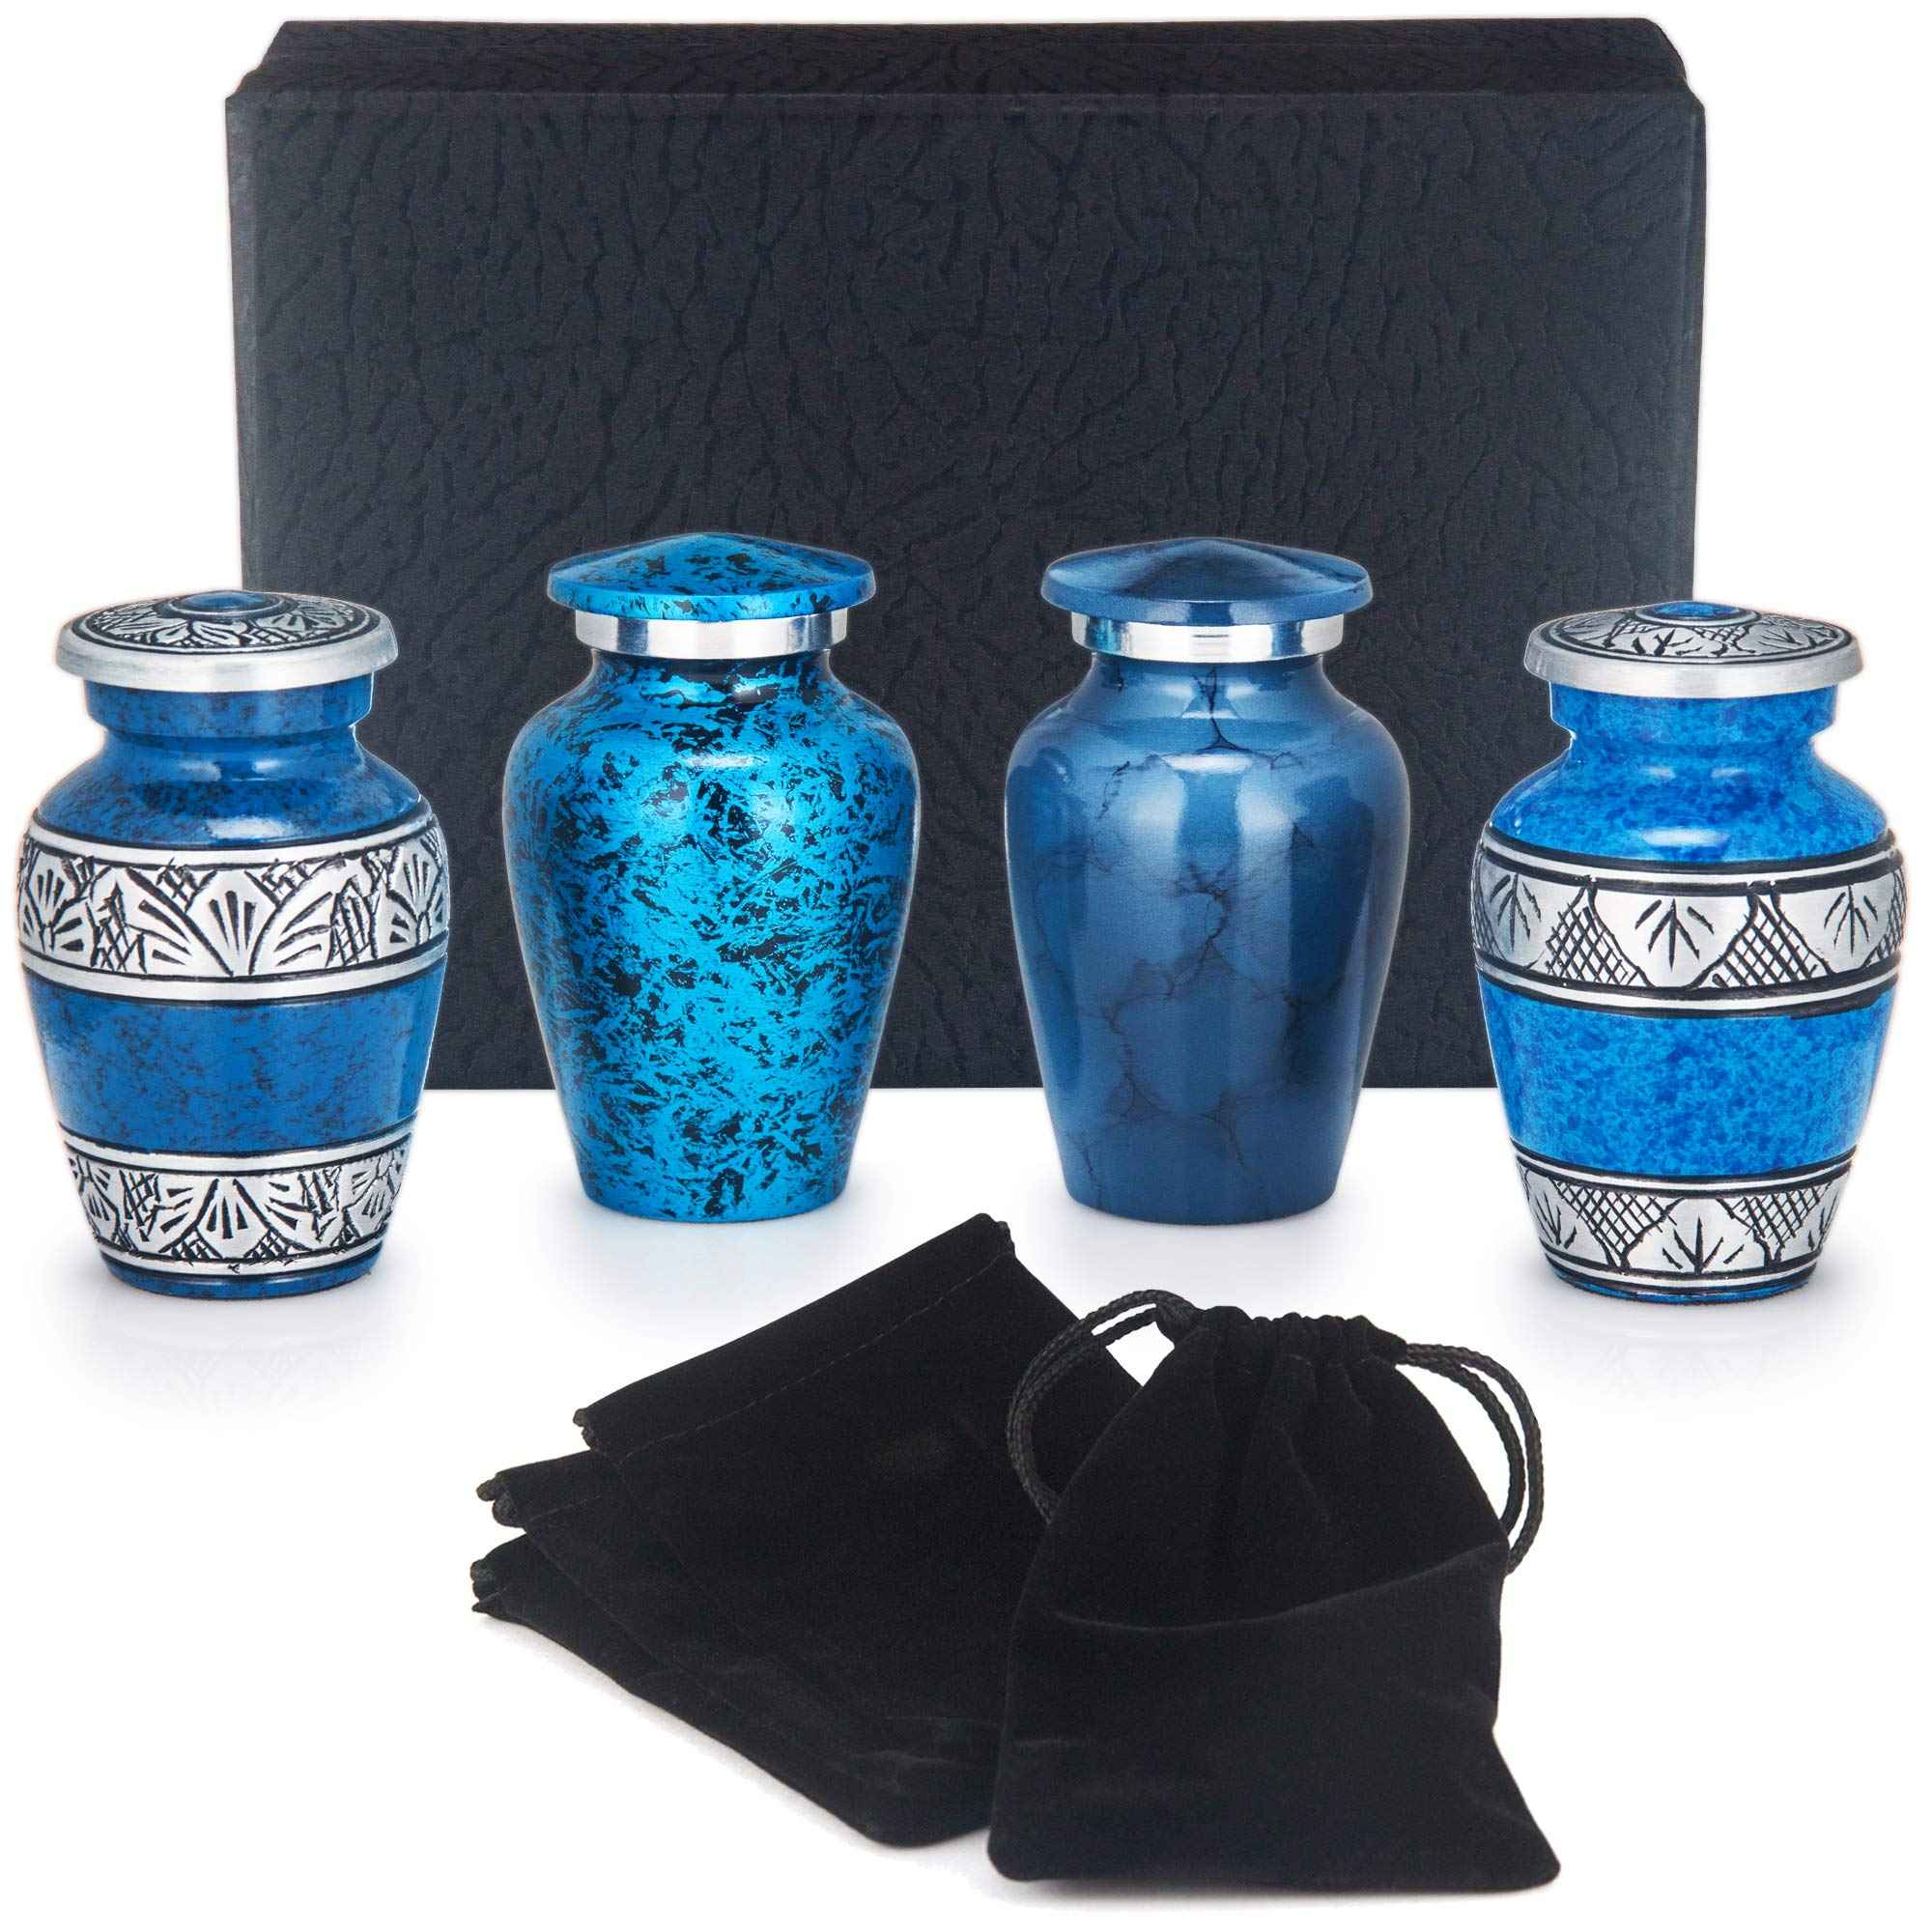 Adera Dreams Small Urns for Human Ashes Keepsake - Set of 4 Blue Memories Mini Cremation Urns - Memorial Ashes Urn with Case, Velvet Pouches and Funnel - Miniature Burial Funeral Urns for Sharing Ash by Adera Dreams